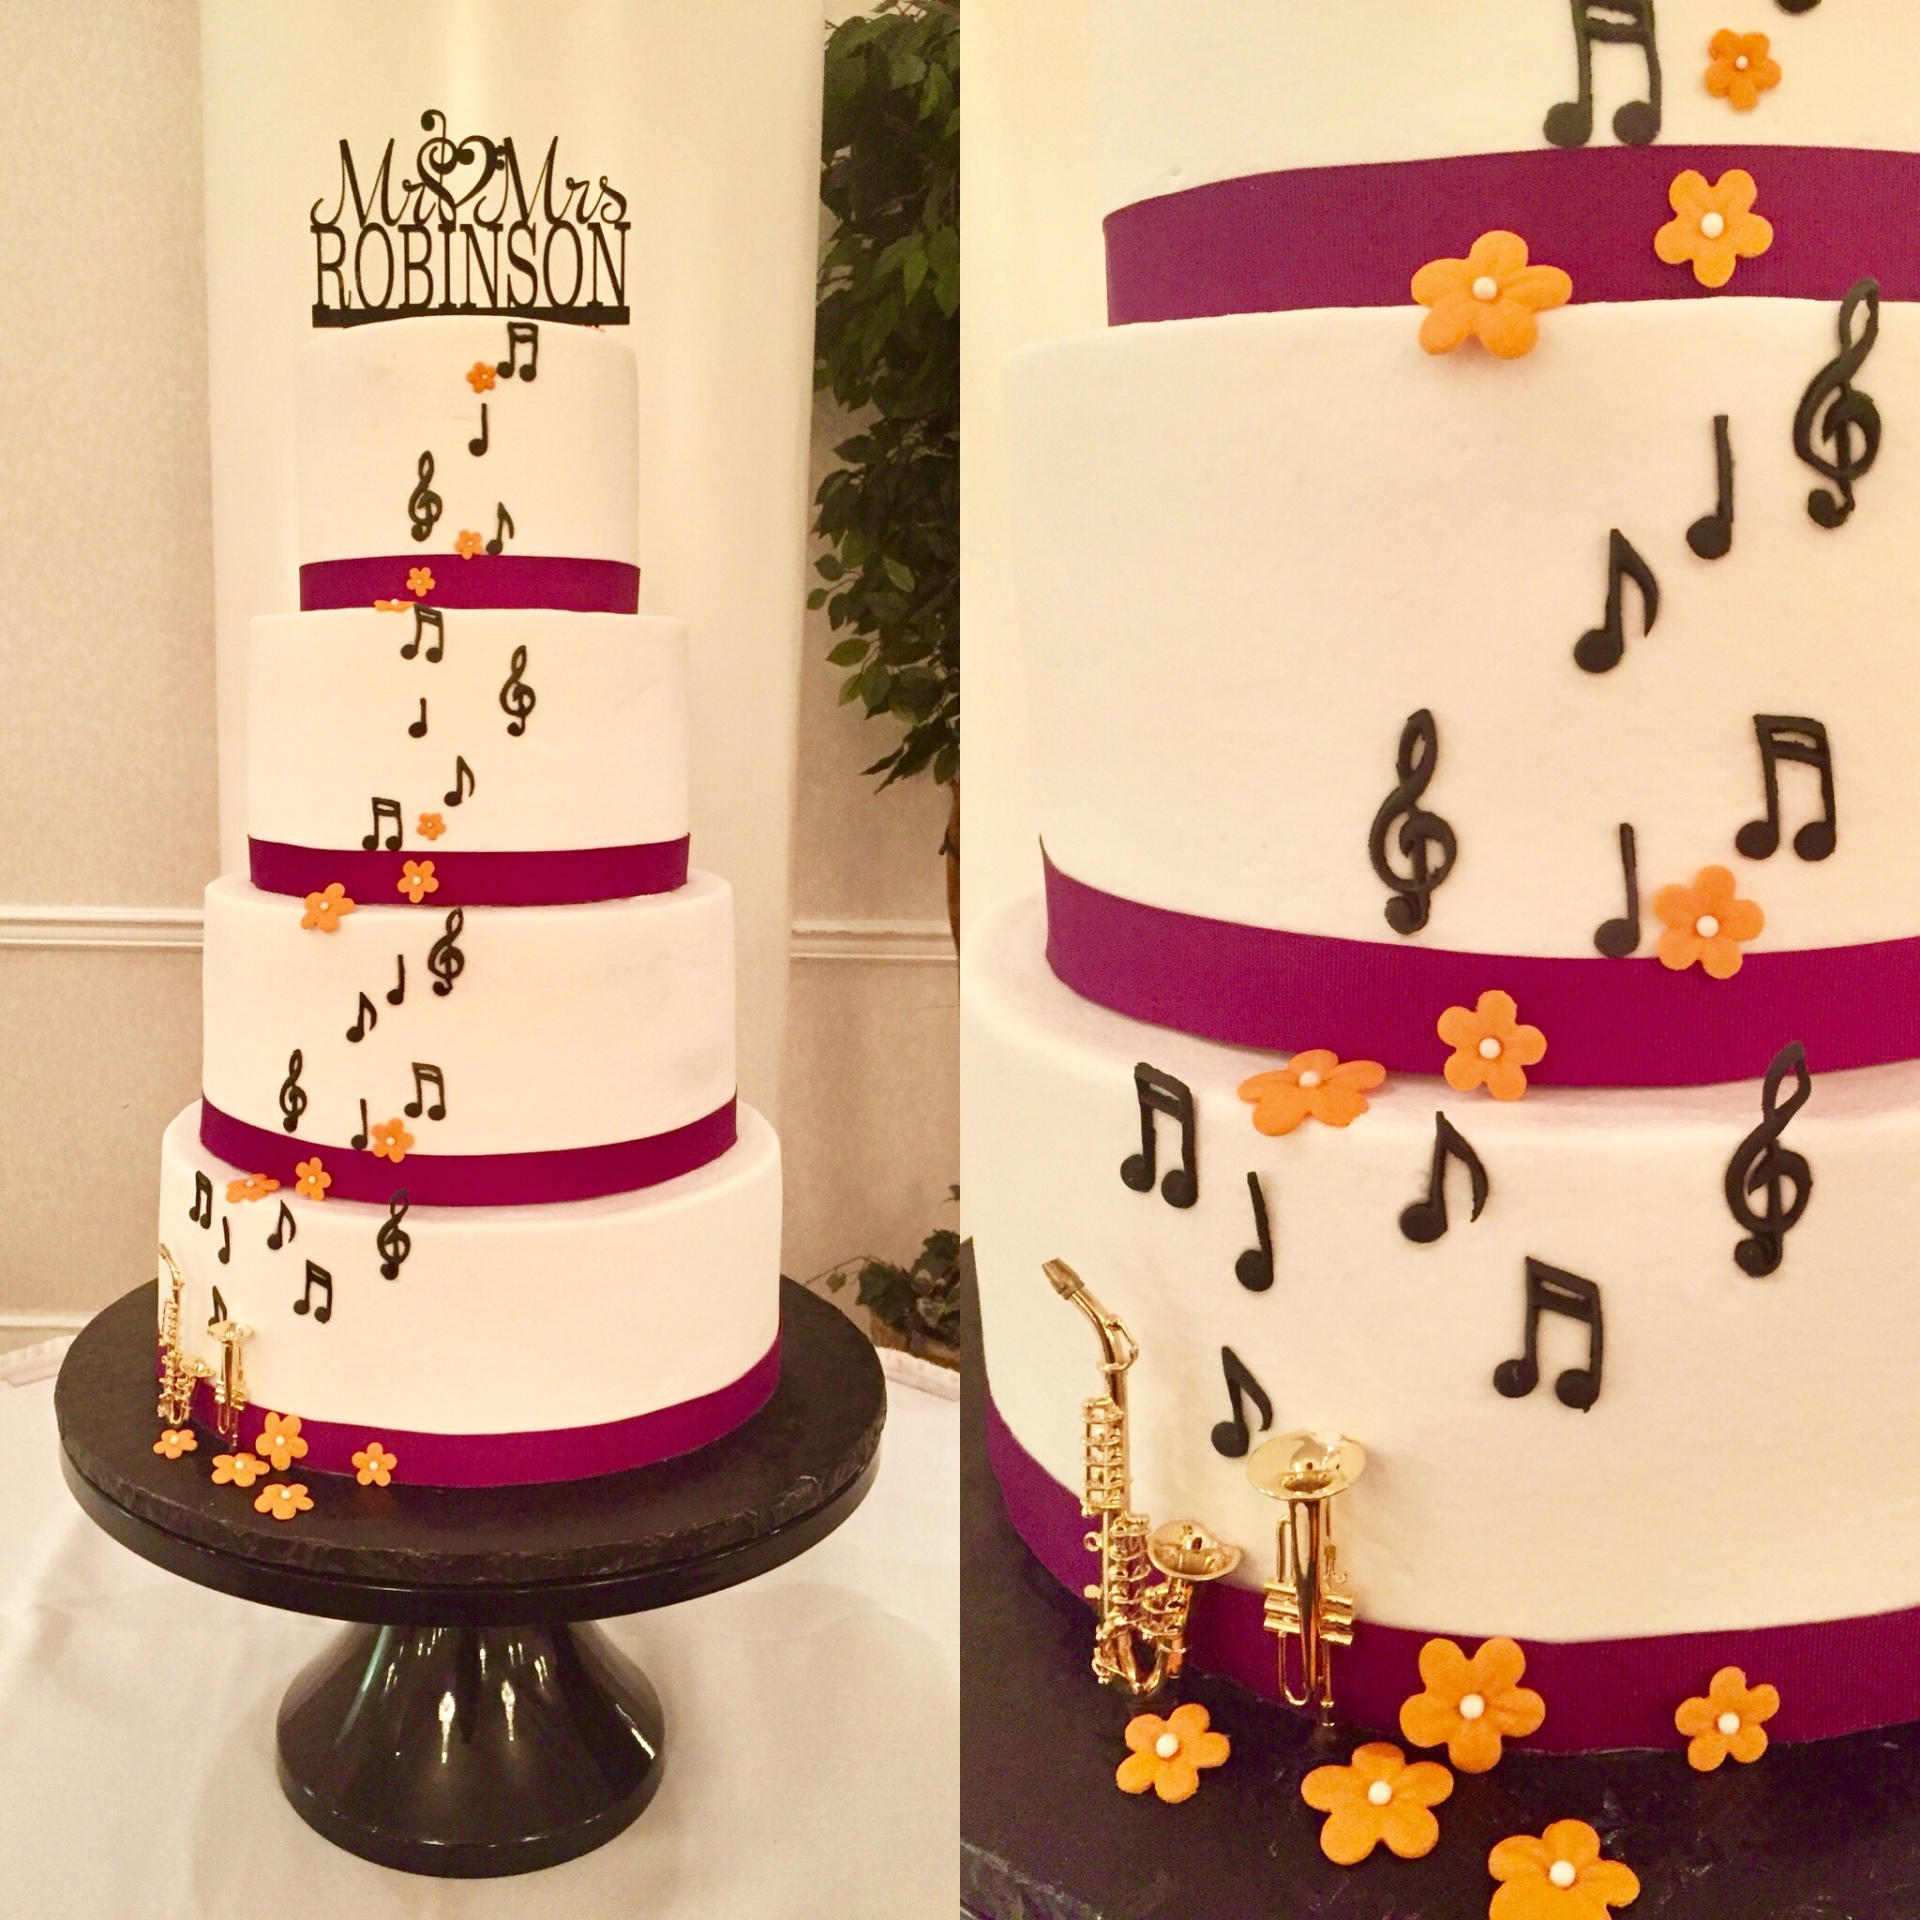 A unique music theme wedding!